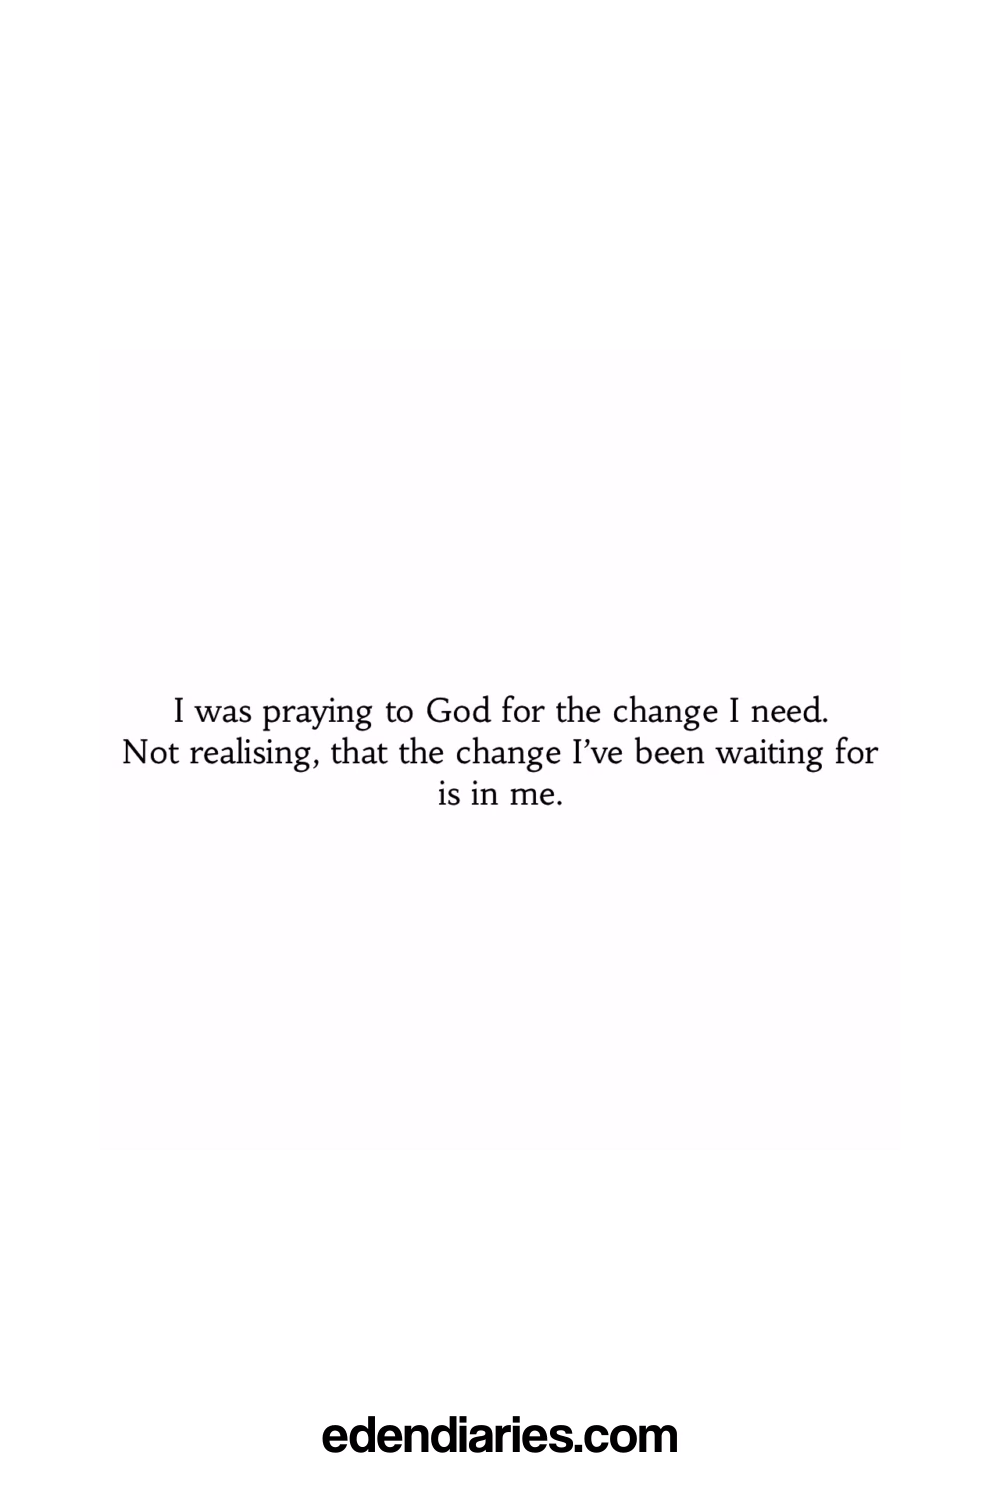 Christian Quotes | Deep Quotes | Wisdom Quotes | Inspirational Quotes